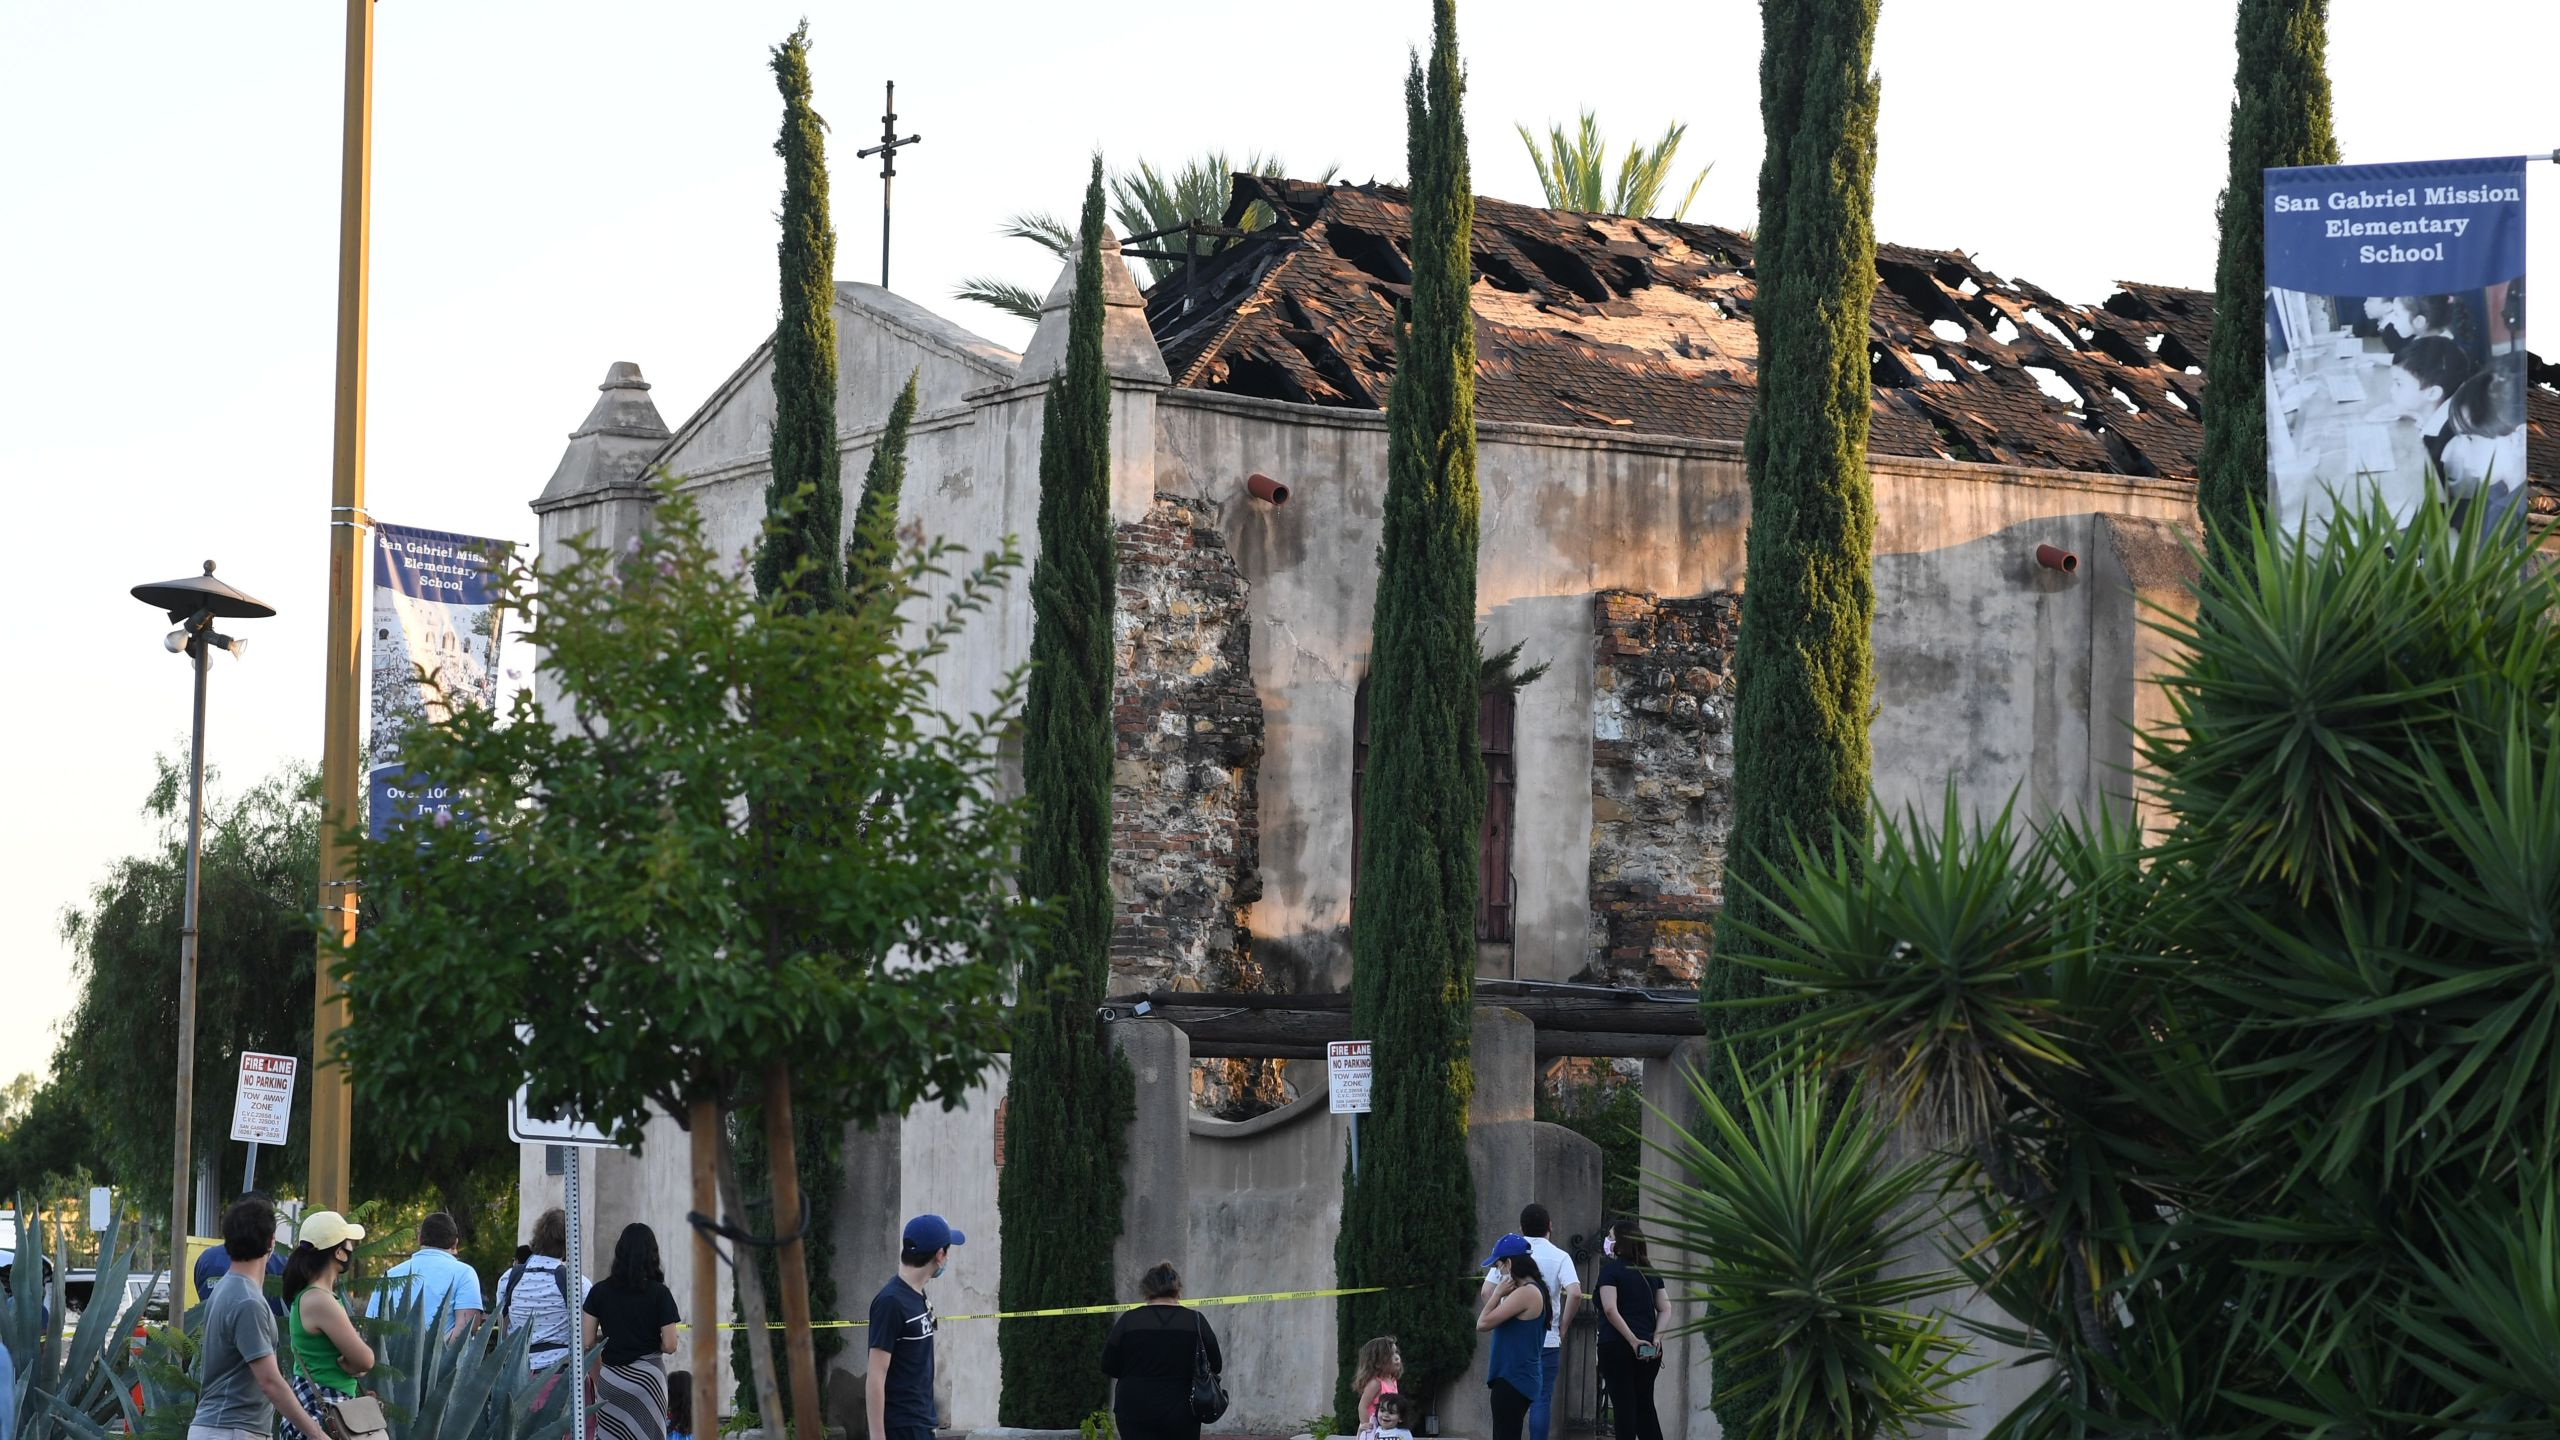 The damaged roof of the San Gabriel Mission is seen after a fire broke out early on July 11, 2020, in San Gabriel. (ROBYN BECK/AFP via Getty Images)